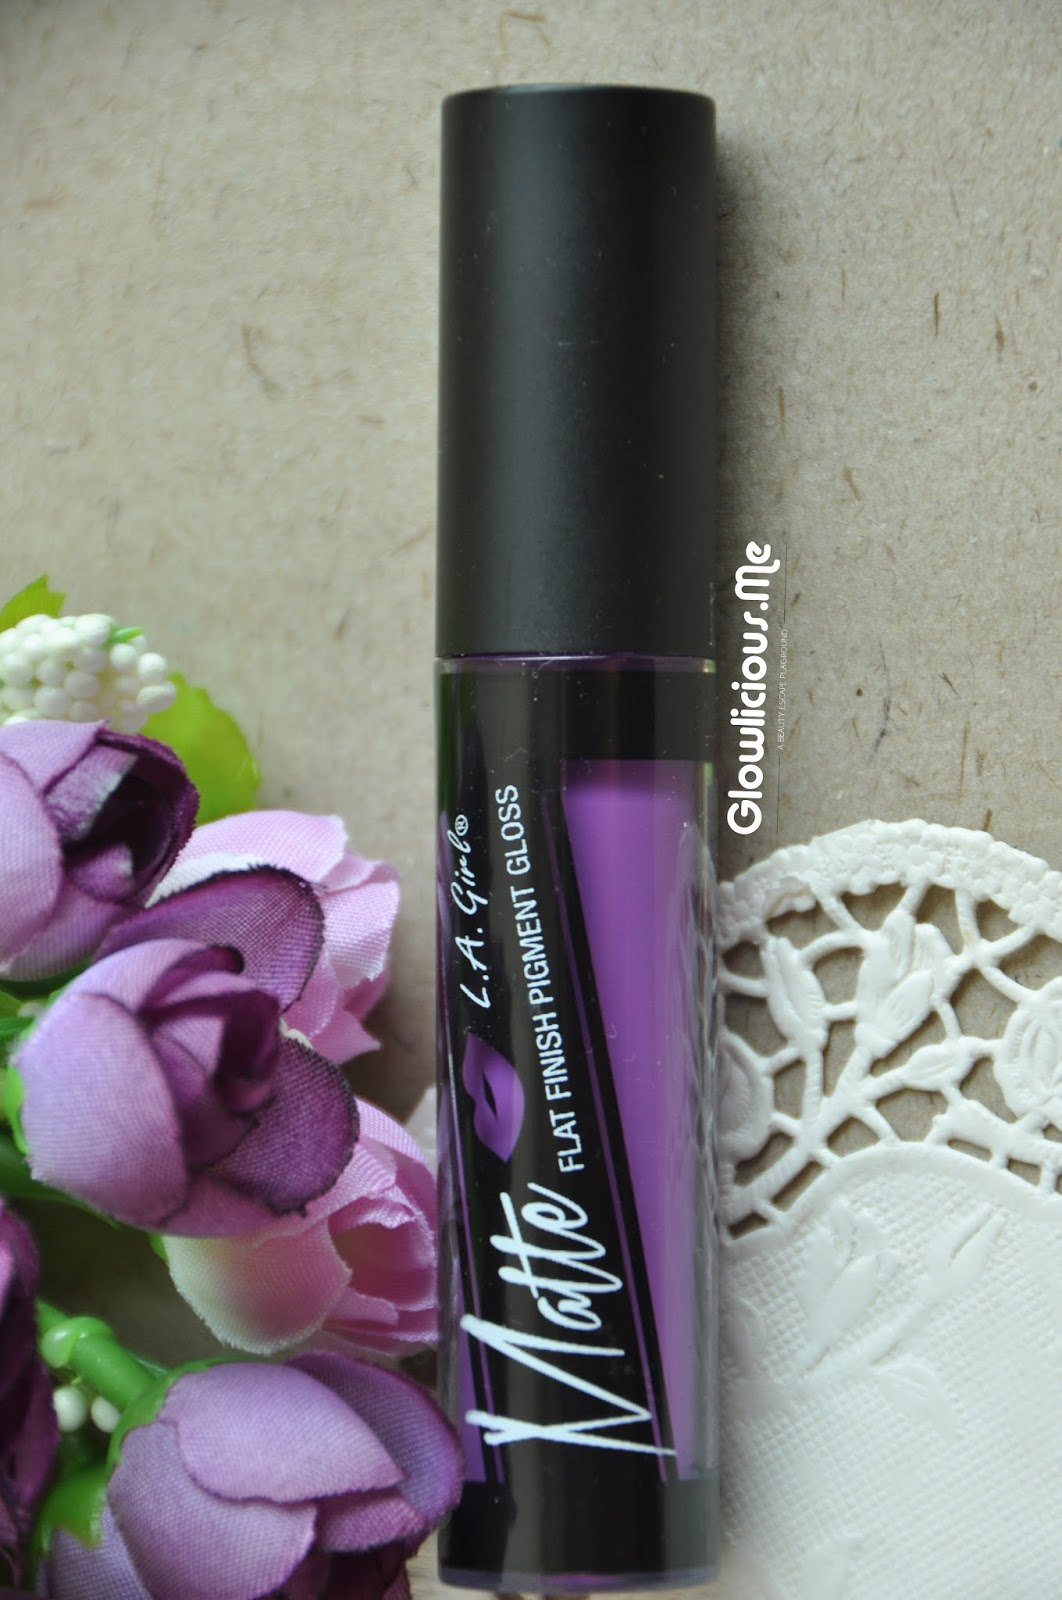 LA Girl Matte Flat Finish Pigment Gloss